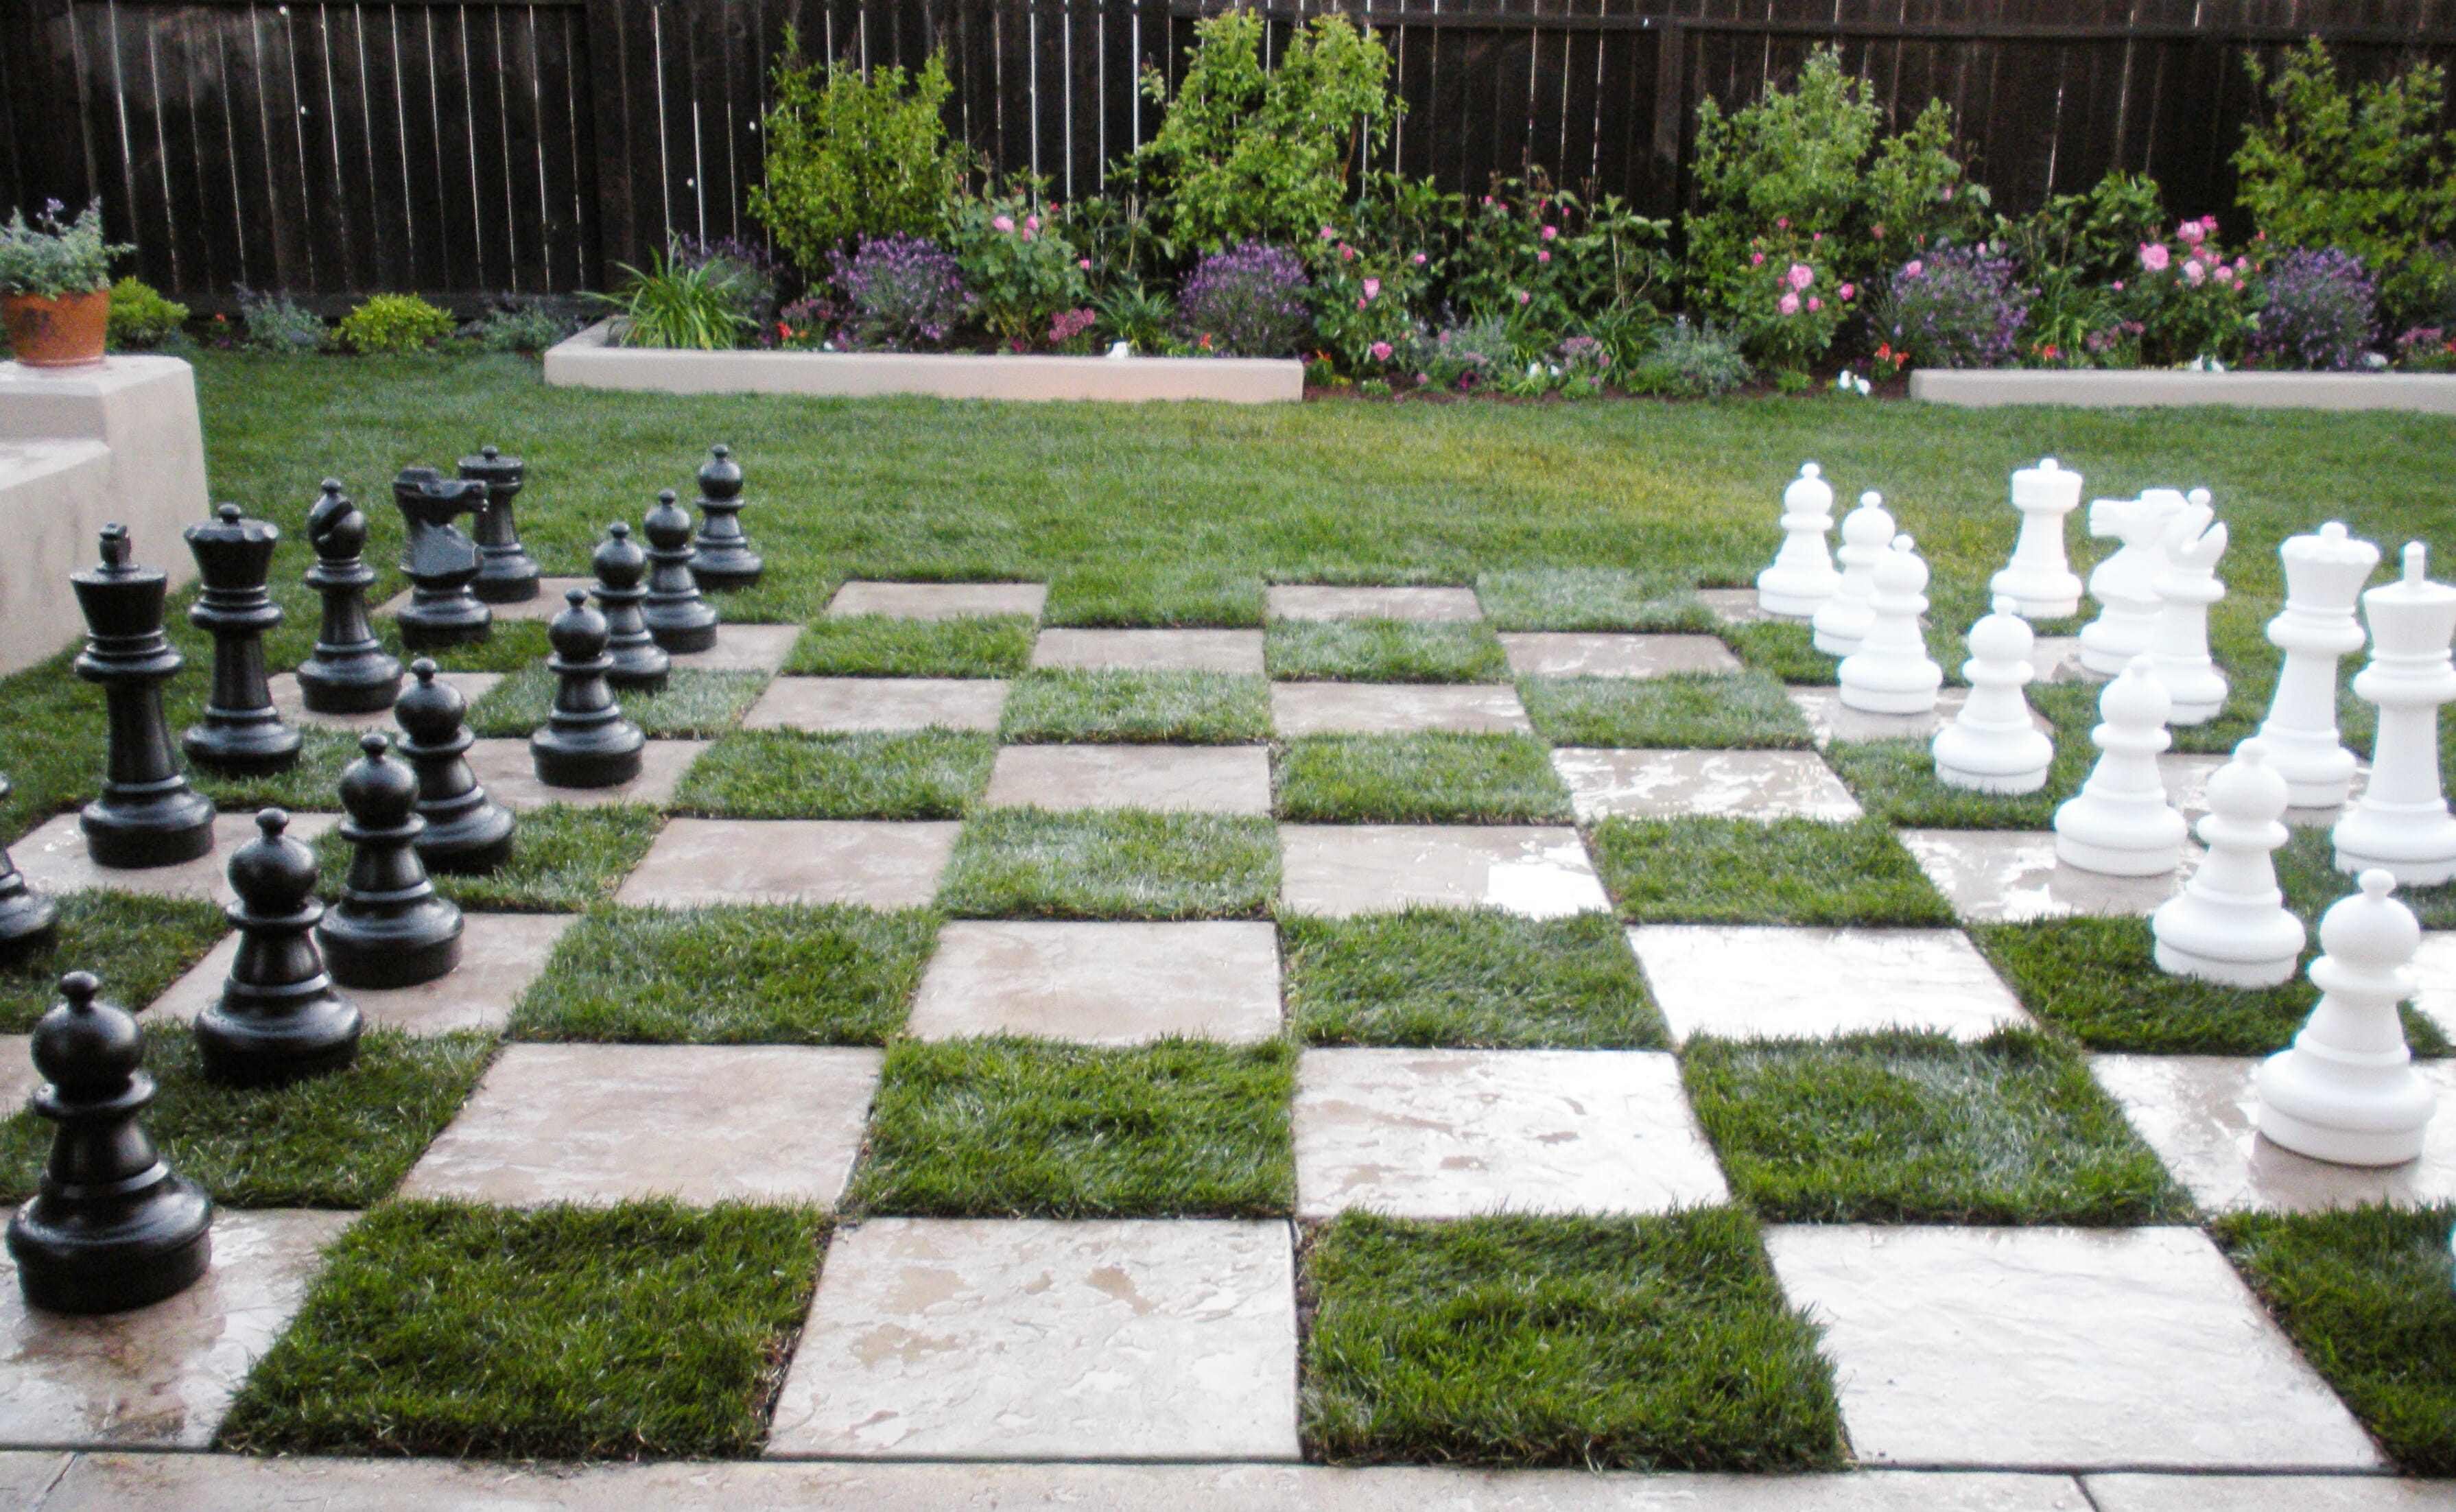 This yard becomes the ultimate entertaining space with the addition of a concrete and sod checkered patio with built-in benches and giant chess pieces.